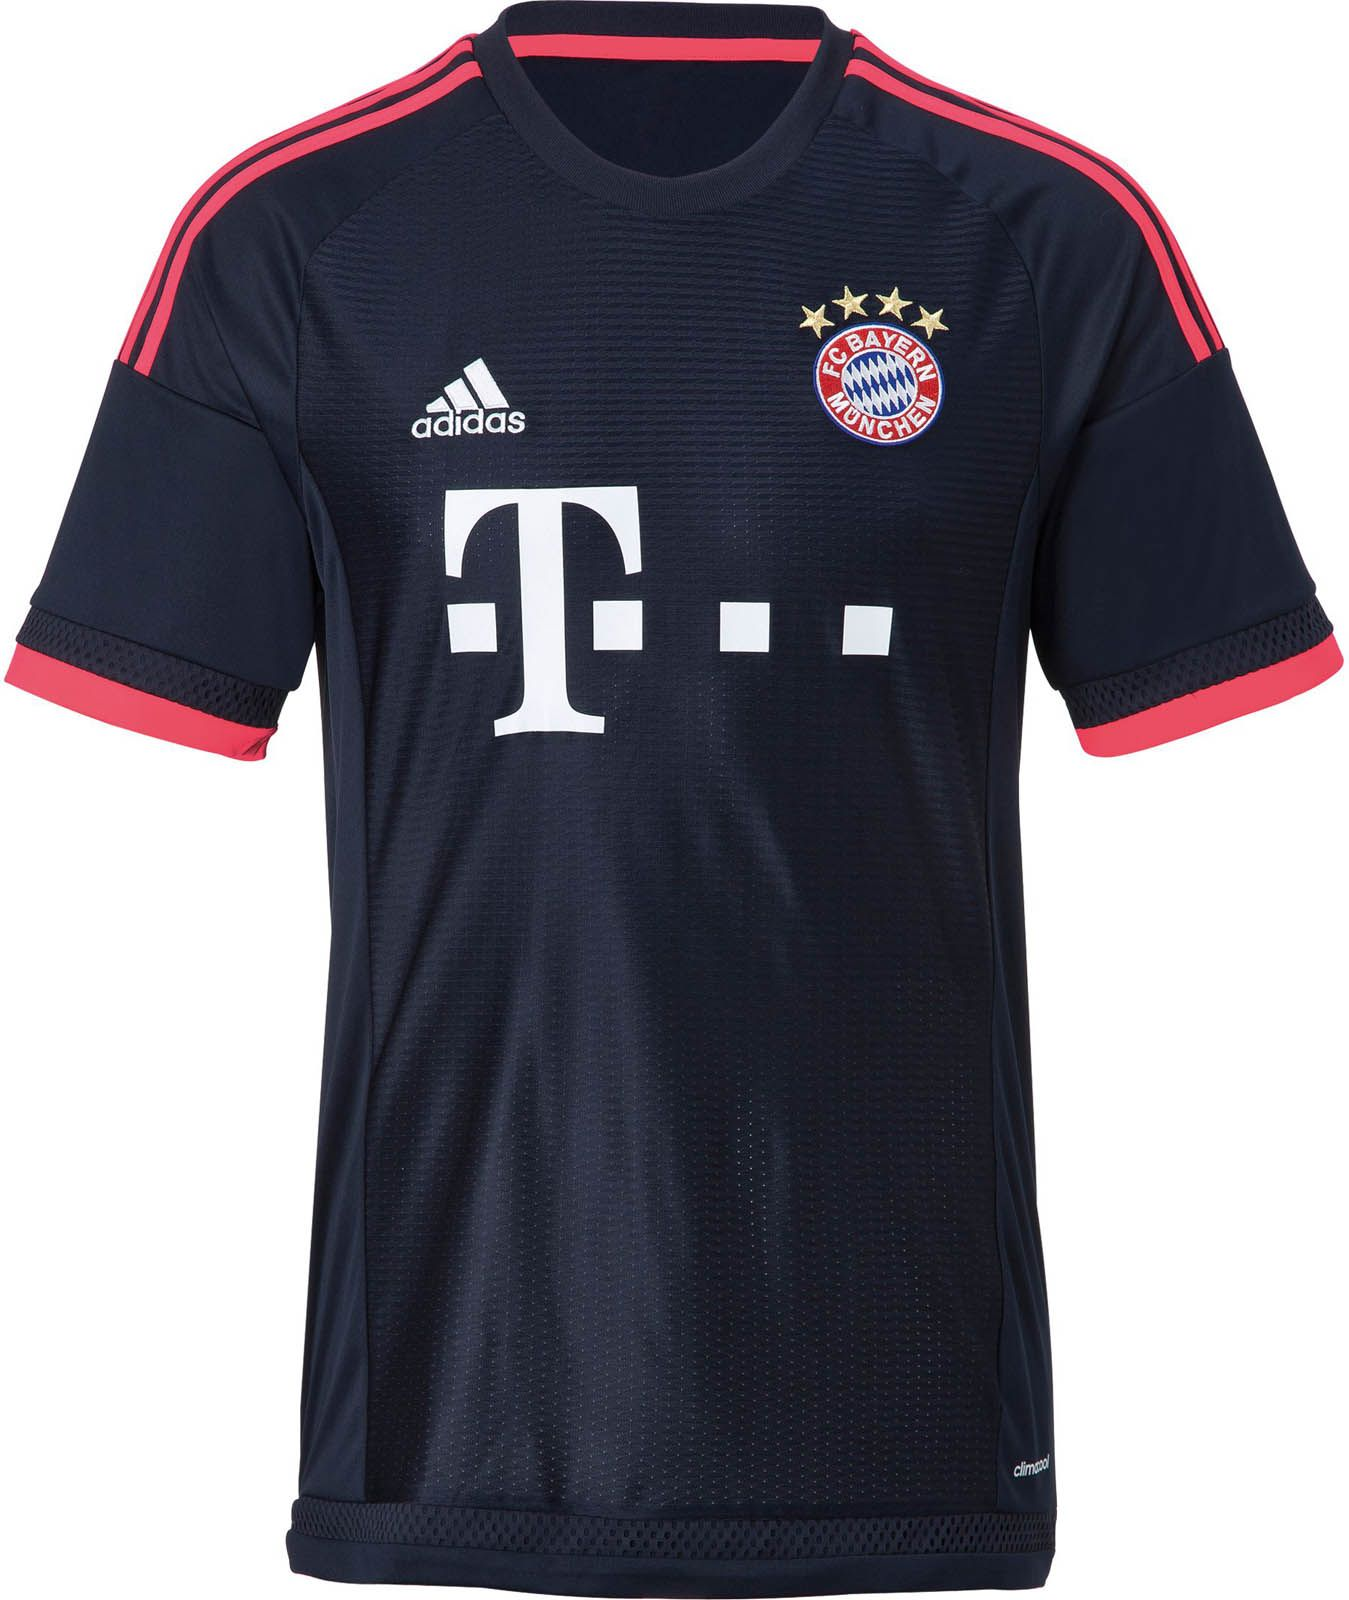 86aecd46f Bayern Munich 2015-16 adidas Third Kit